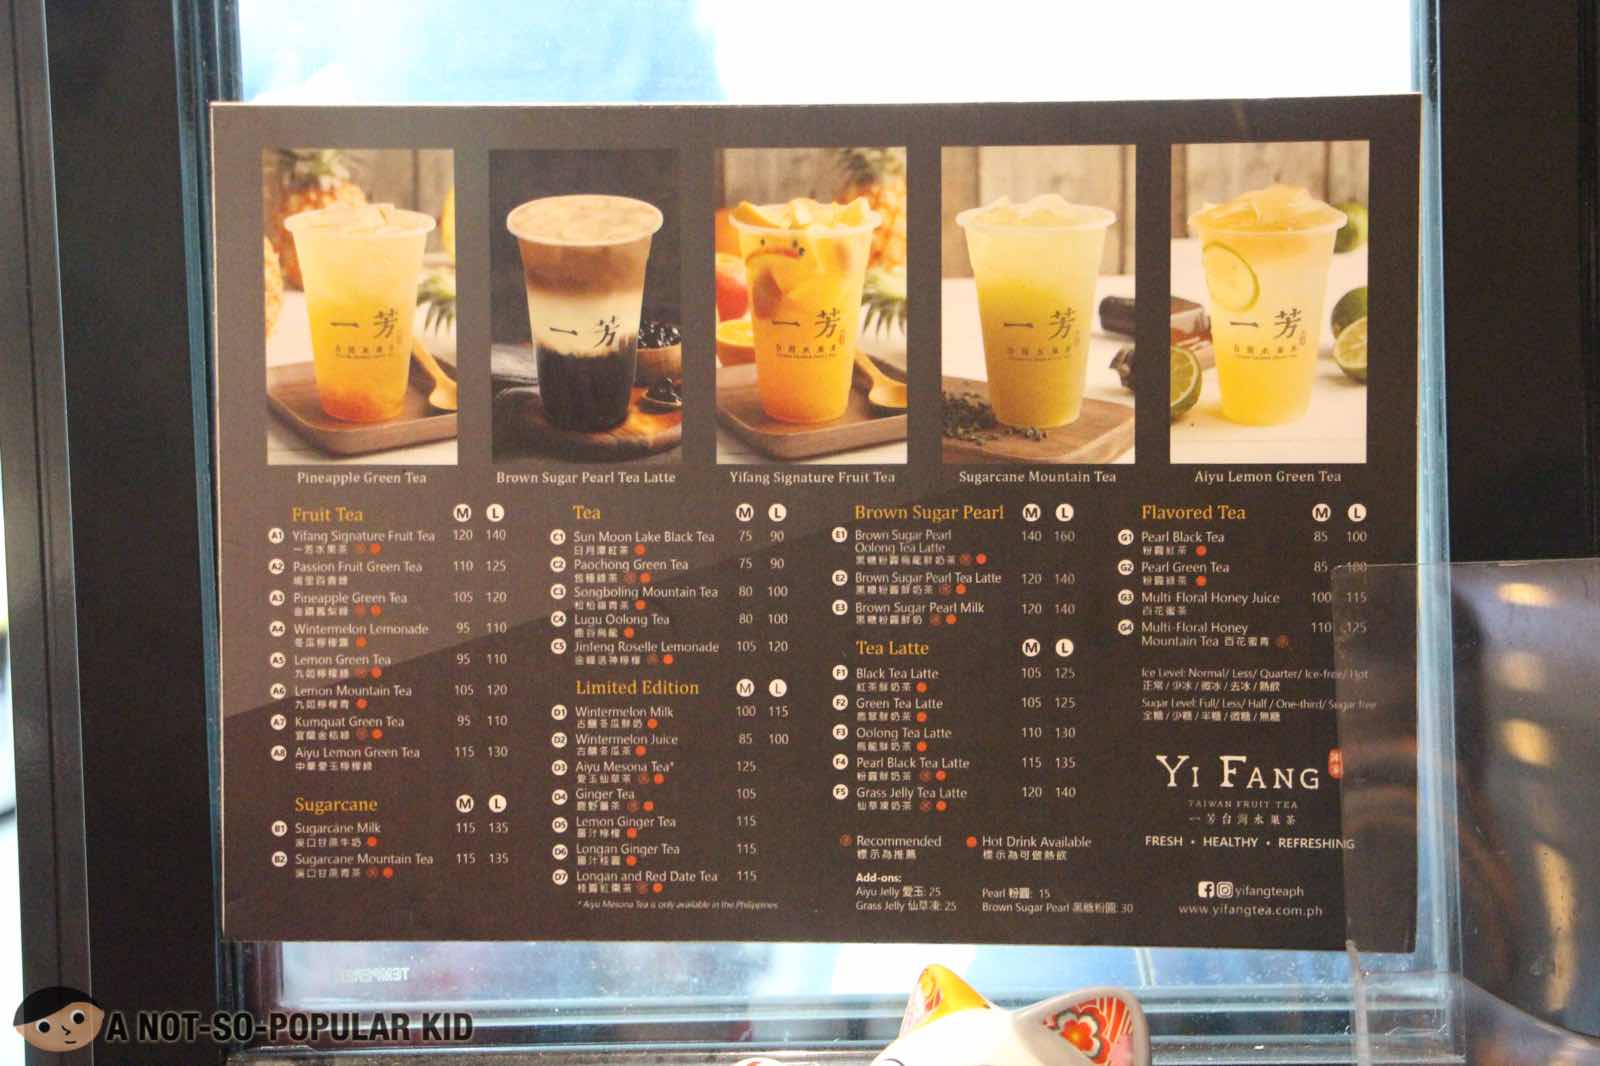 Menu and Price of Yi Fang Taiwan Fruit Tea Philippines - October 2018